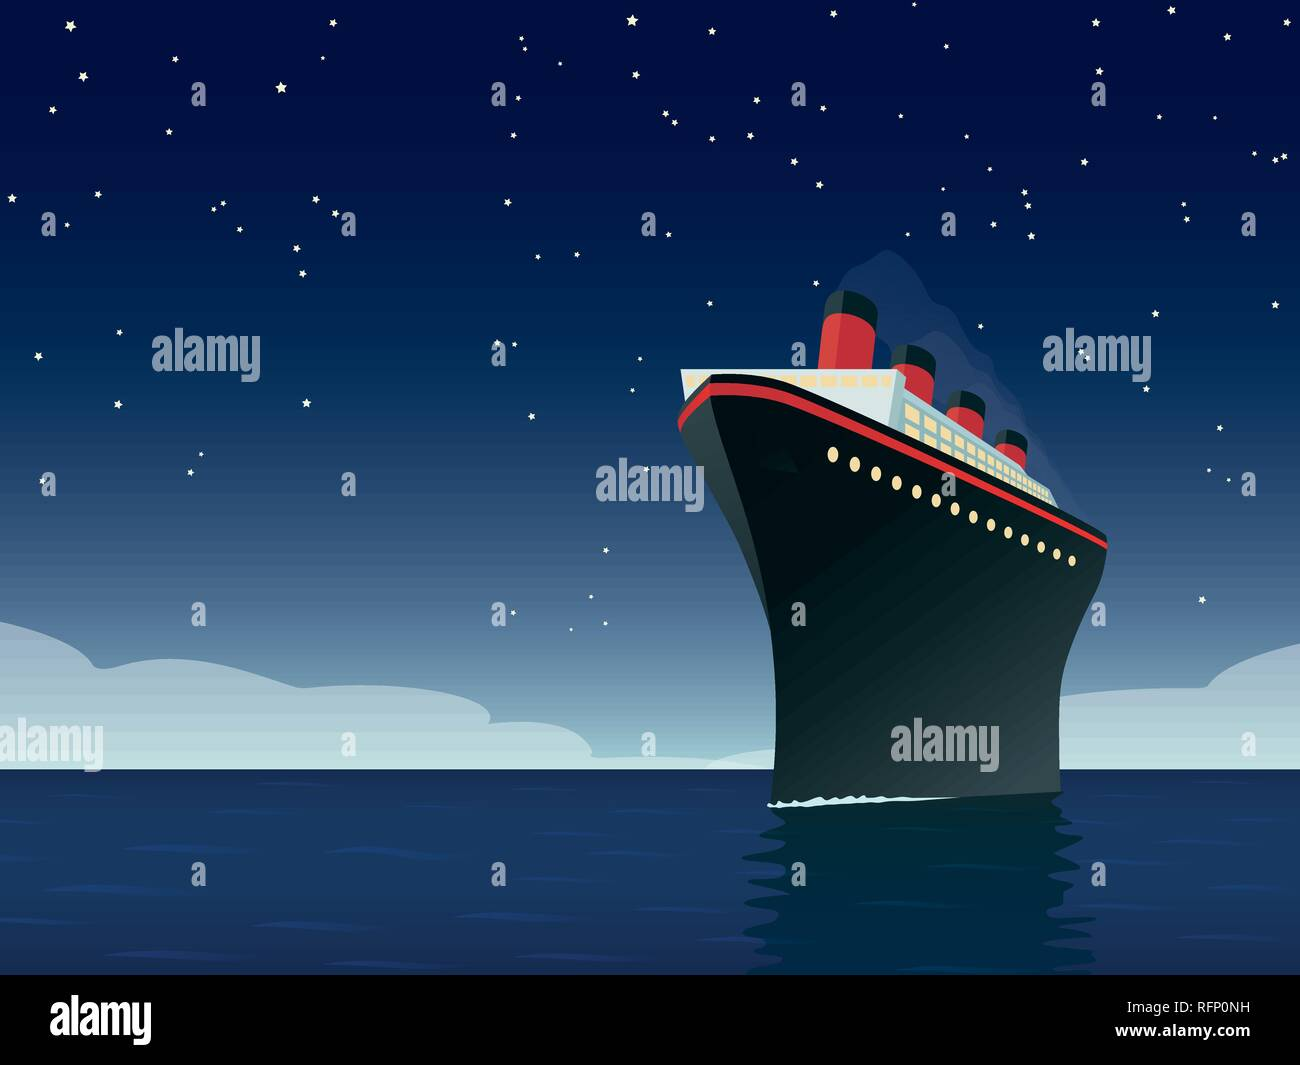 Vintage style horizontal vector illustration of giant cruise ship on the ocean at night - Stock Vector